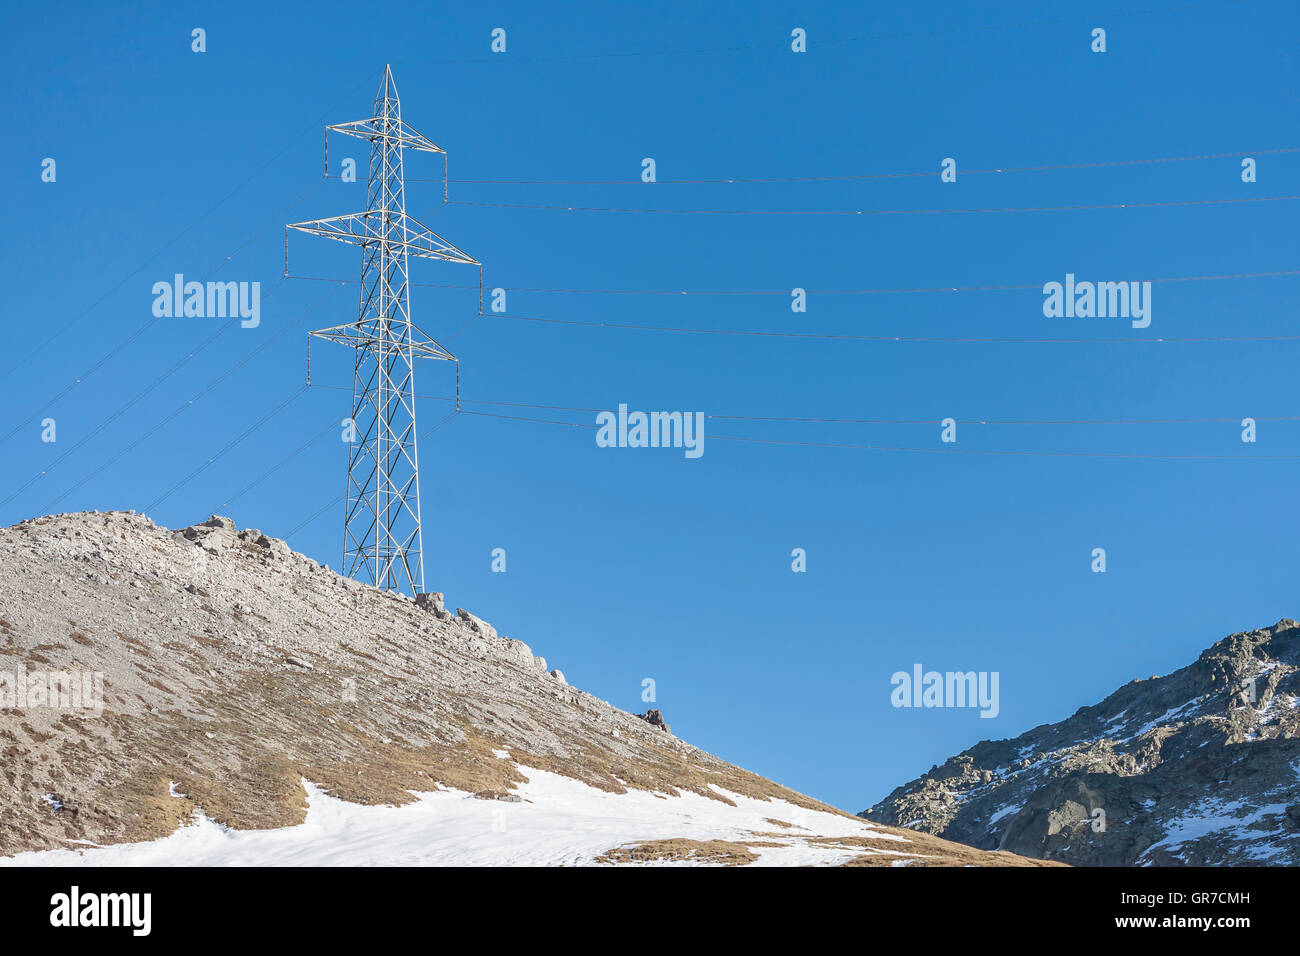 Mast Of A Landline On 2400 M Above The Summit Of The Albula Pass - Stock Image